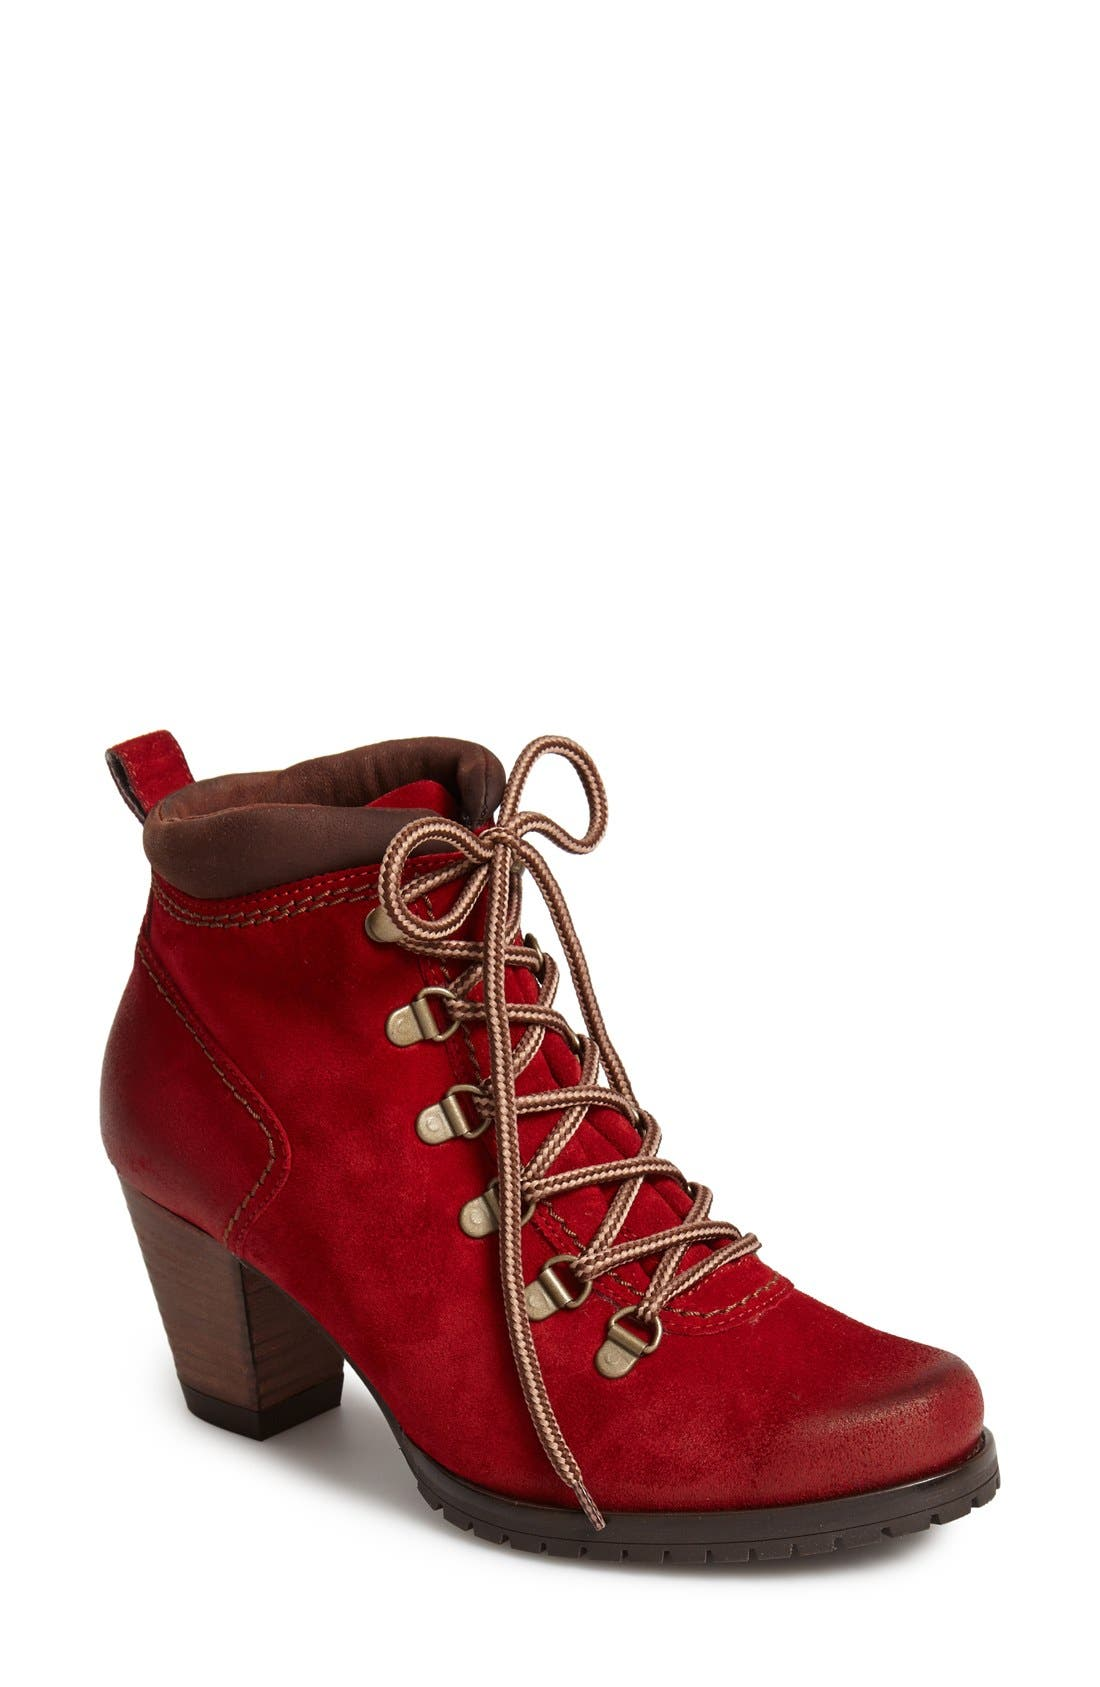 Alternate Image 1 Selected - Paul Green 'Boise' Leather Bootie (Women)